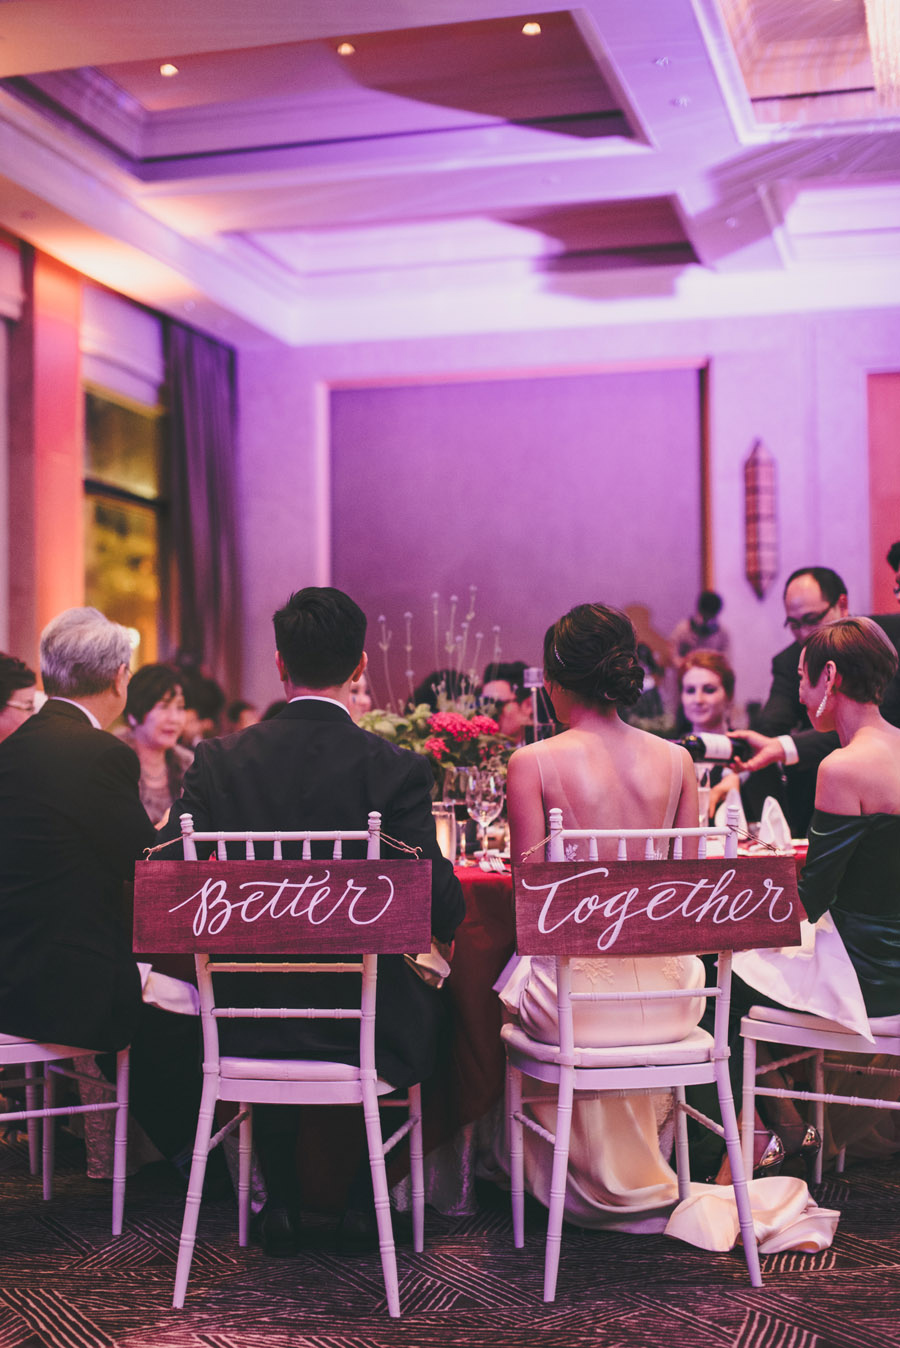 """Better Together"" hand-painted wedding signage 